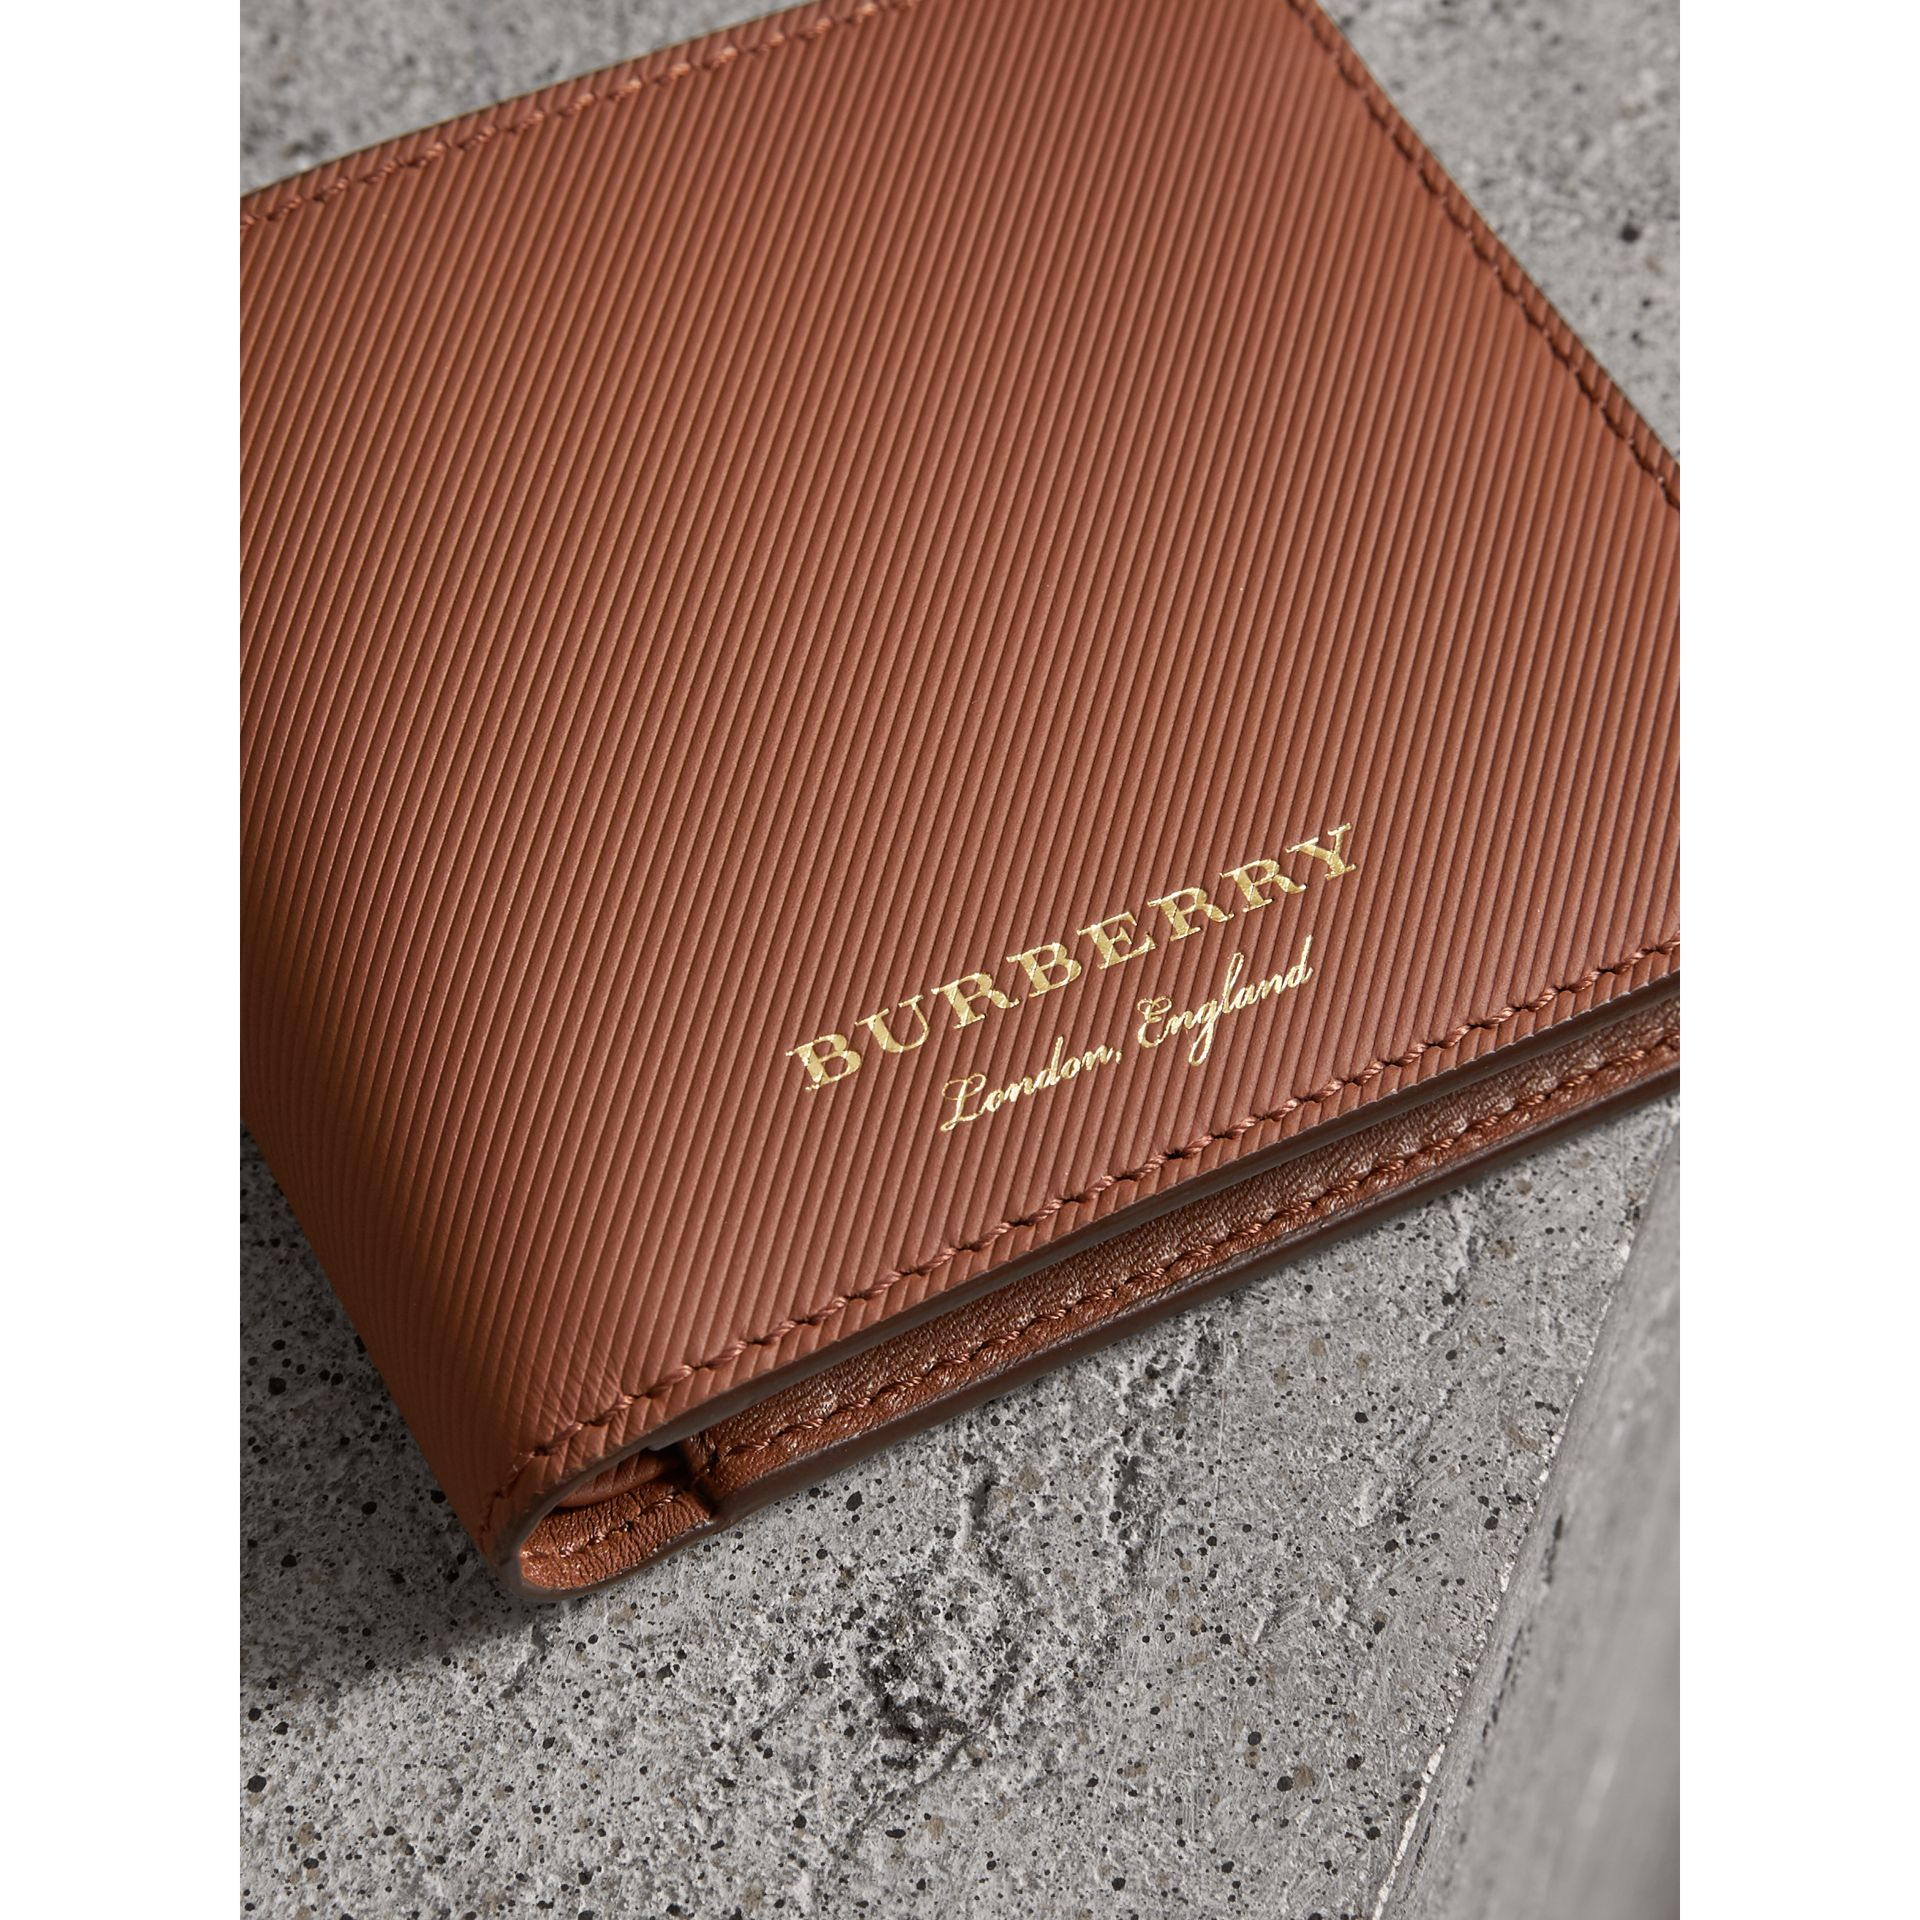 Trench Leather Bifold Wallet with Removable Card Case in Tan - Men | Burberry - gallery image 1